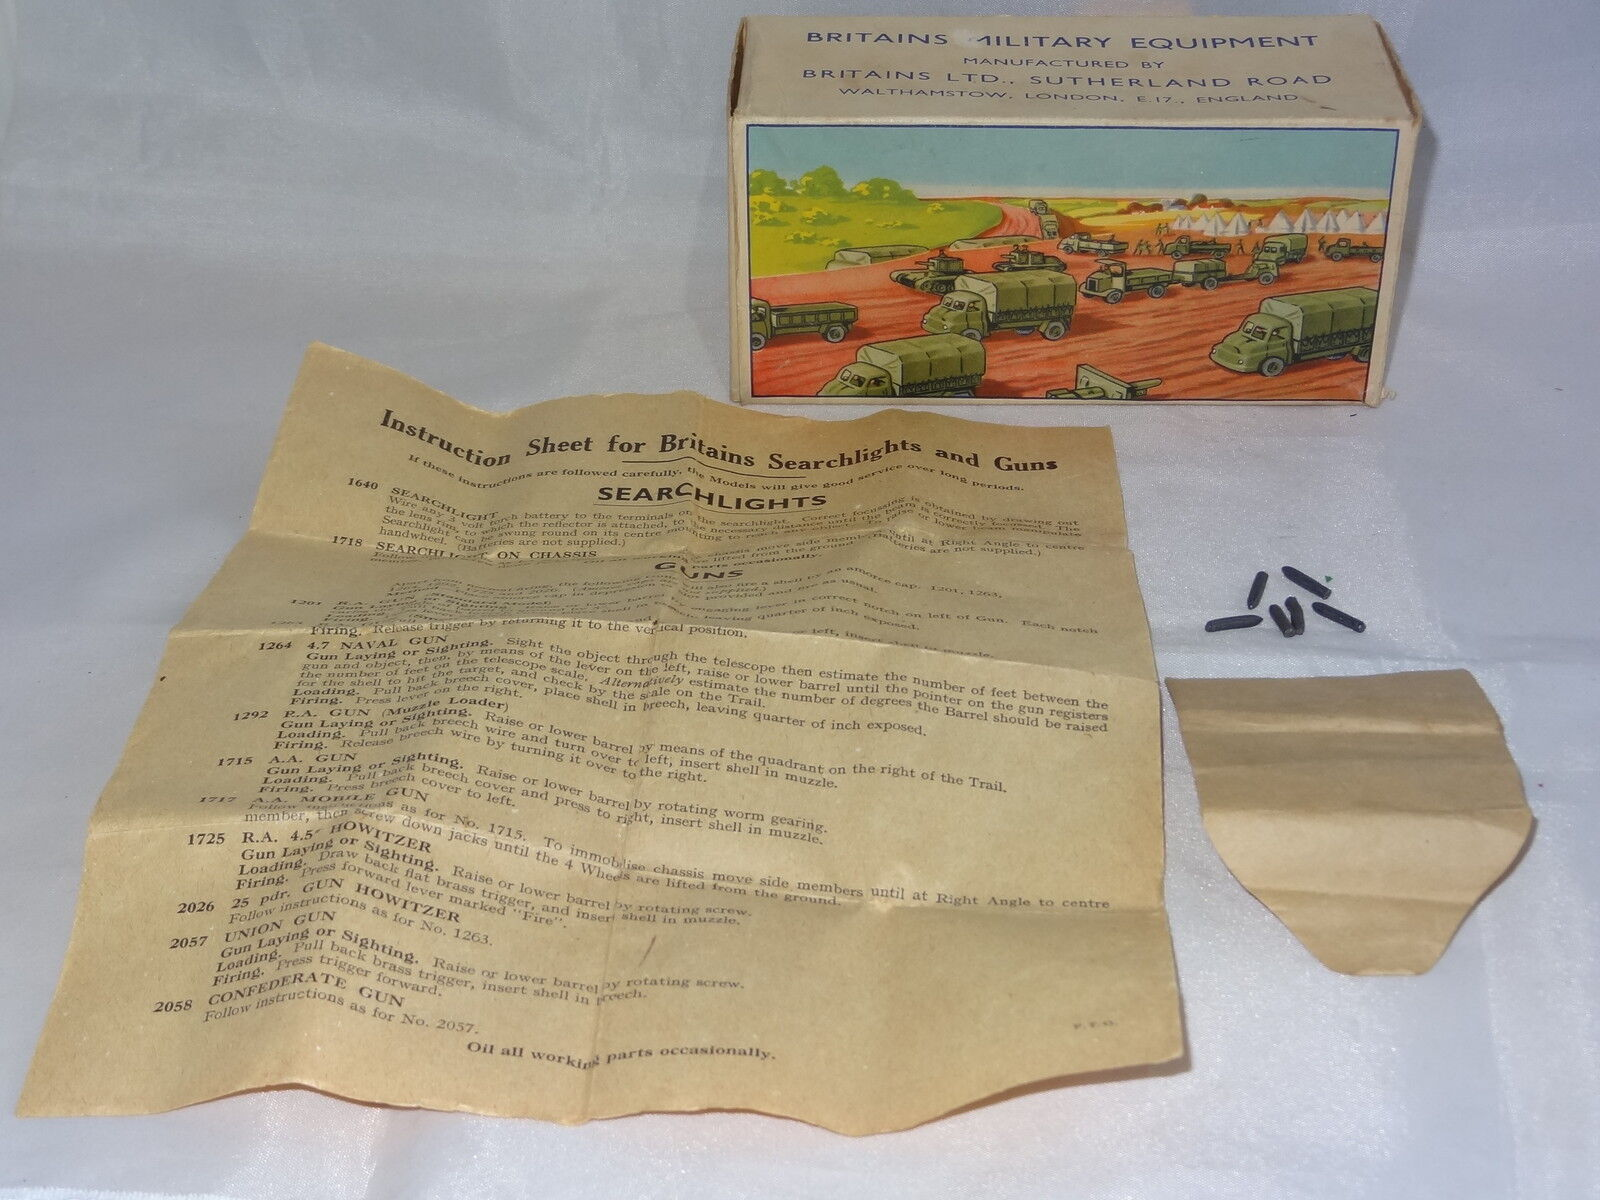 Britains ROYAL ARTILLERY GUN BOX 1201 with rare  instruction leaflet and shells